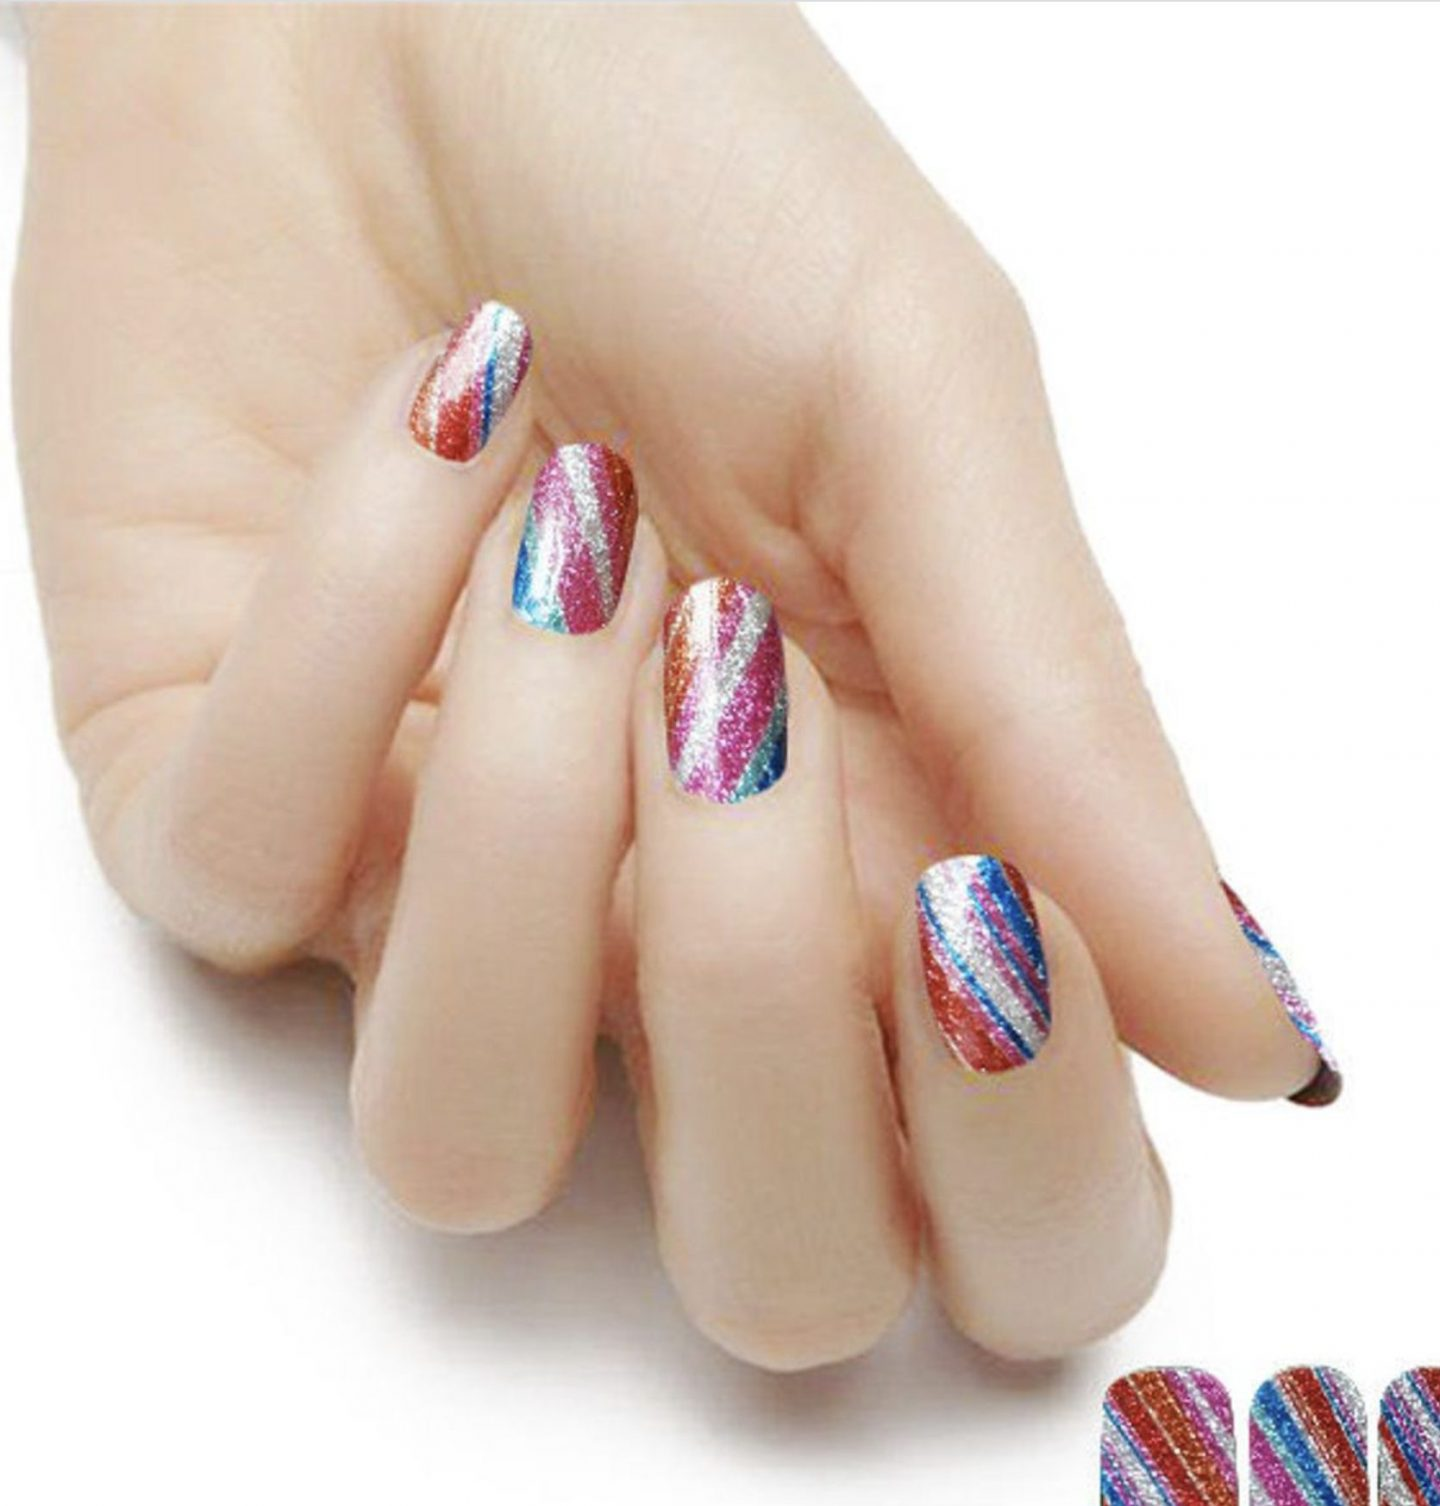 Glitter red and blue nail wraps